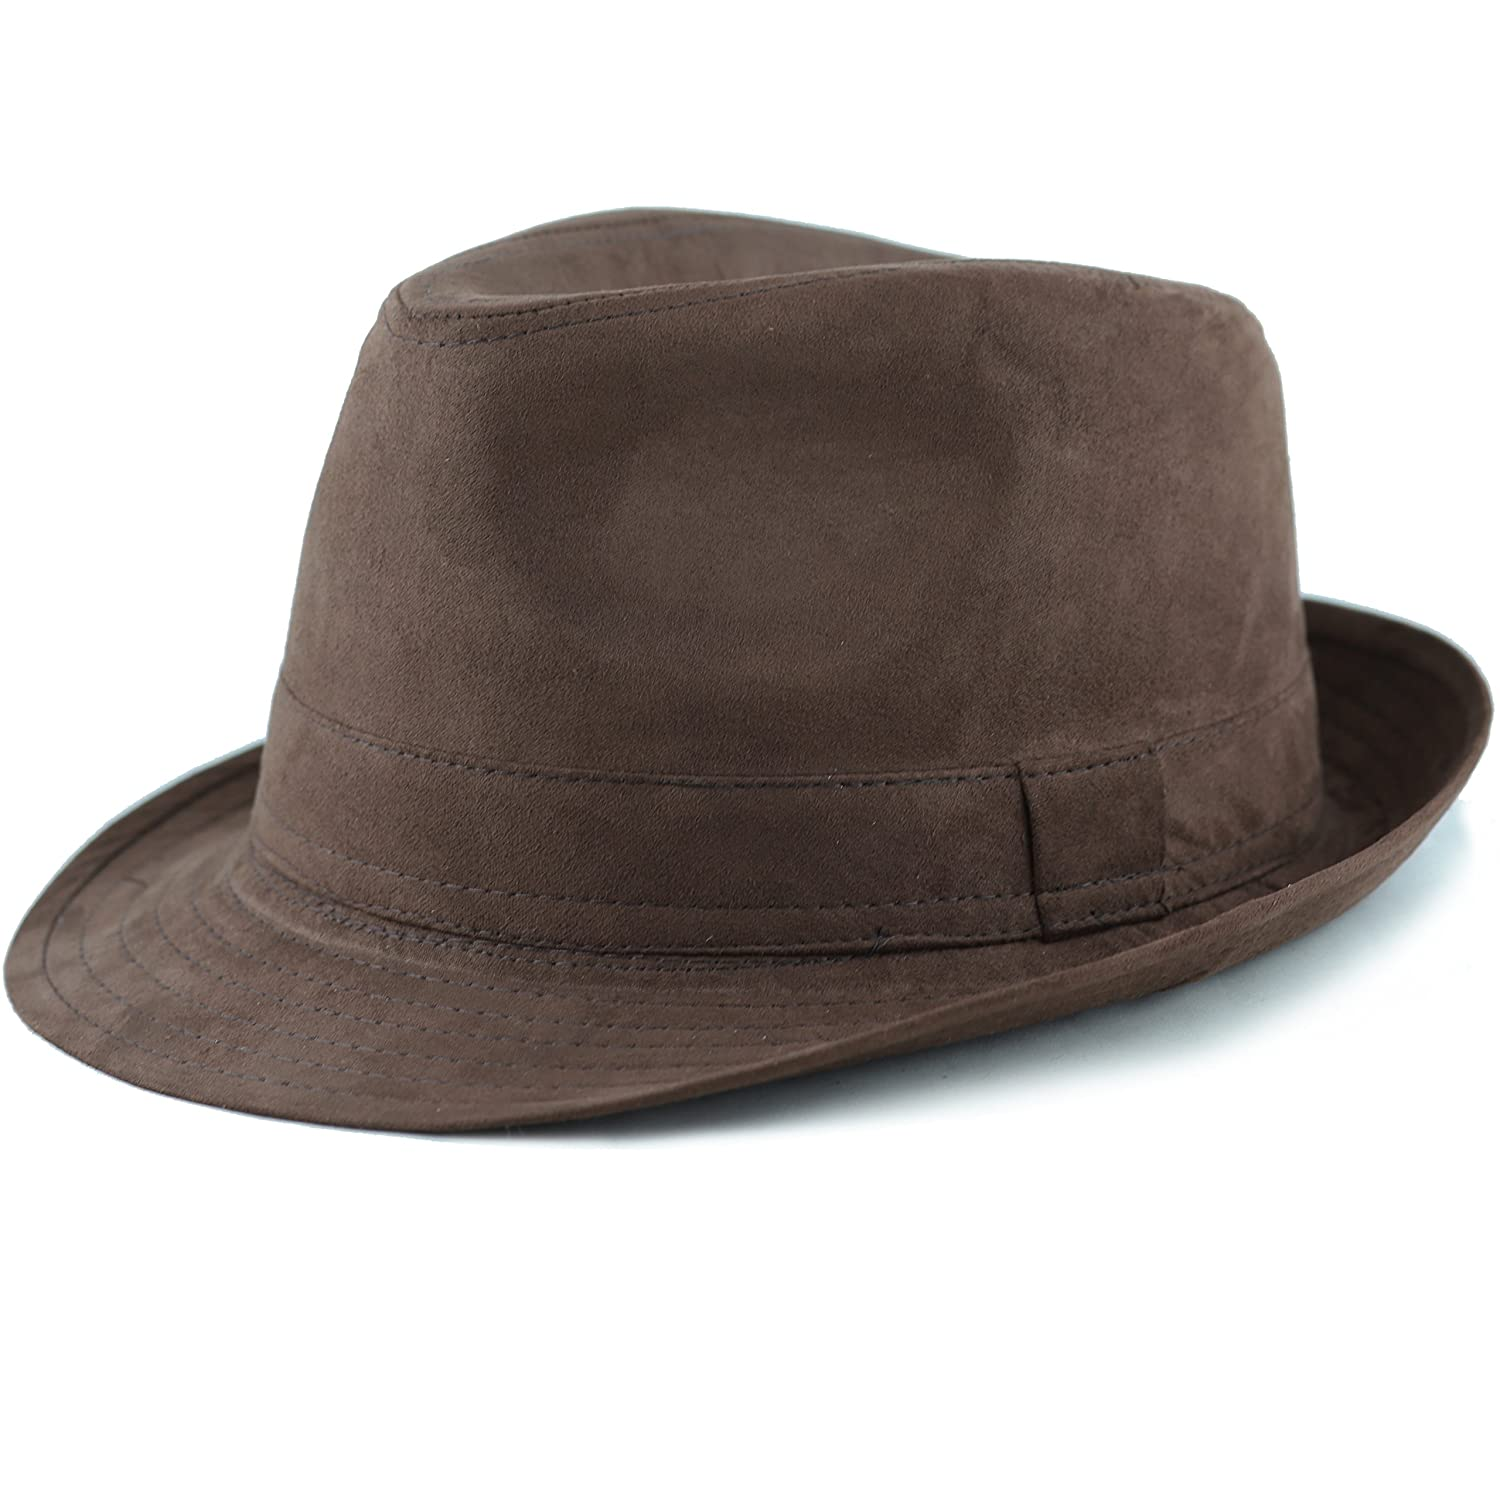 The Hat Depot Faux Suede Wool Blend Trilby Fedora Hats